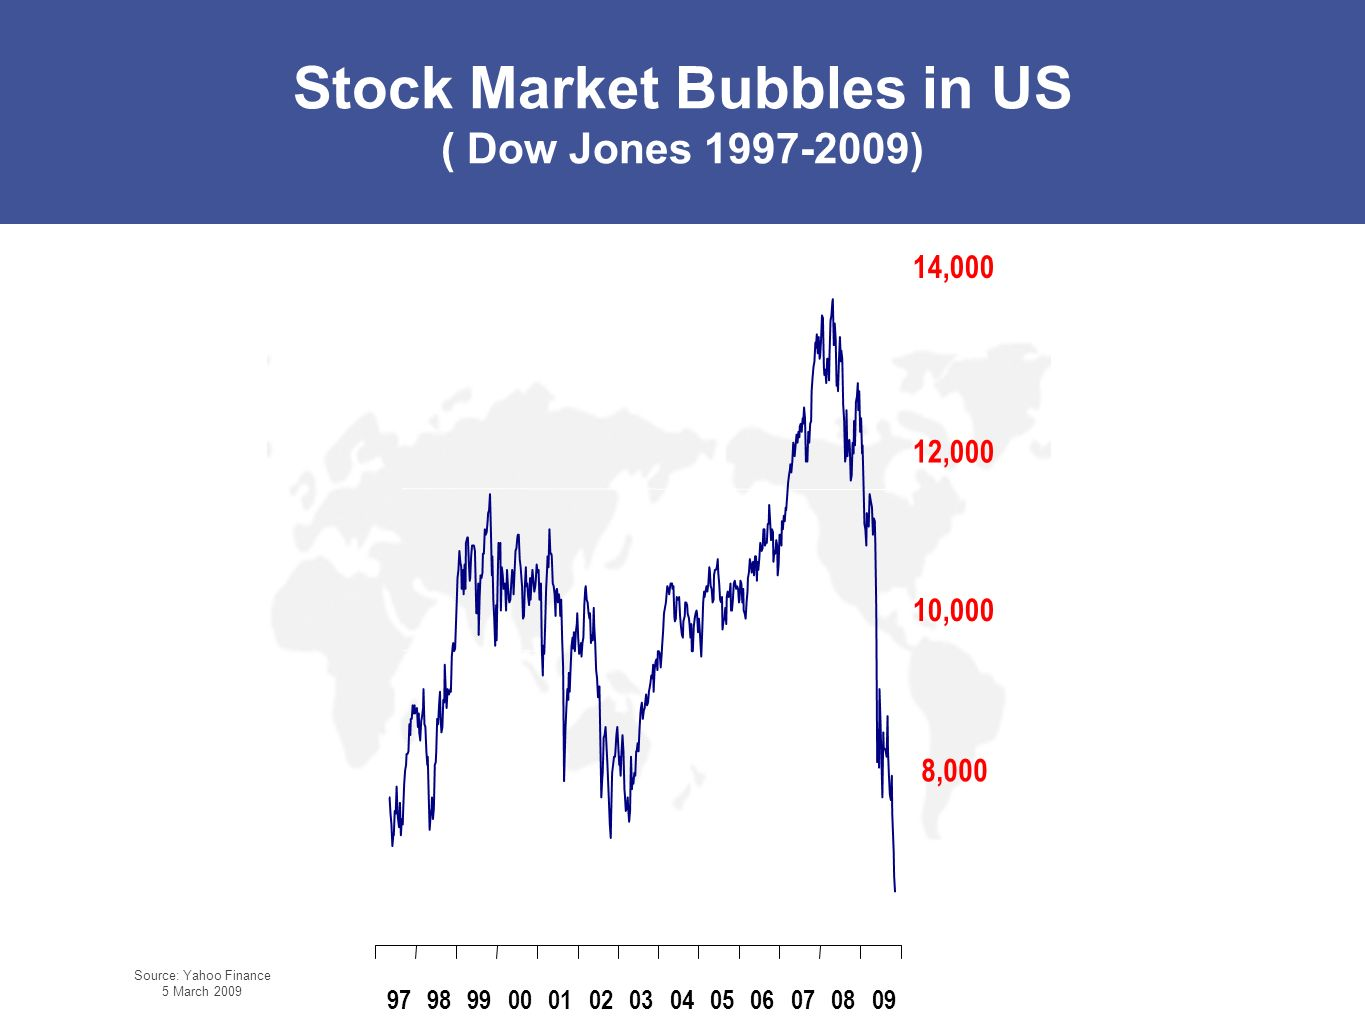 Stock Market Bubbles in US ( Dow Jones 1997-2009)